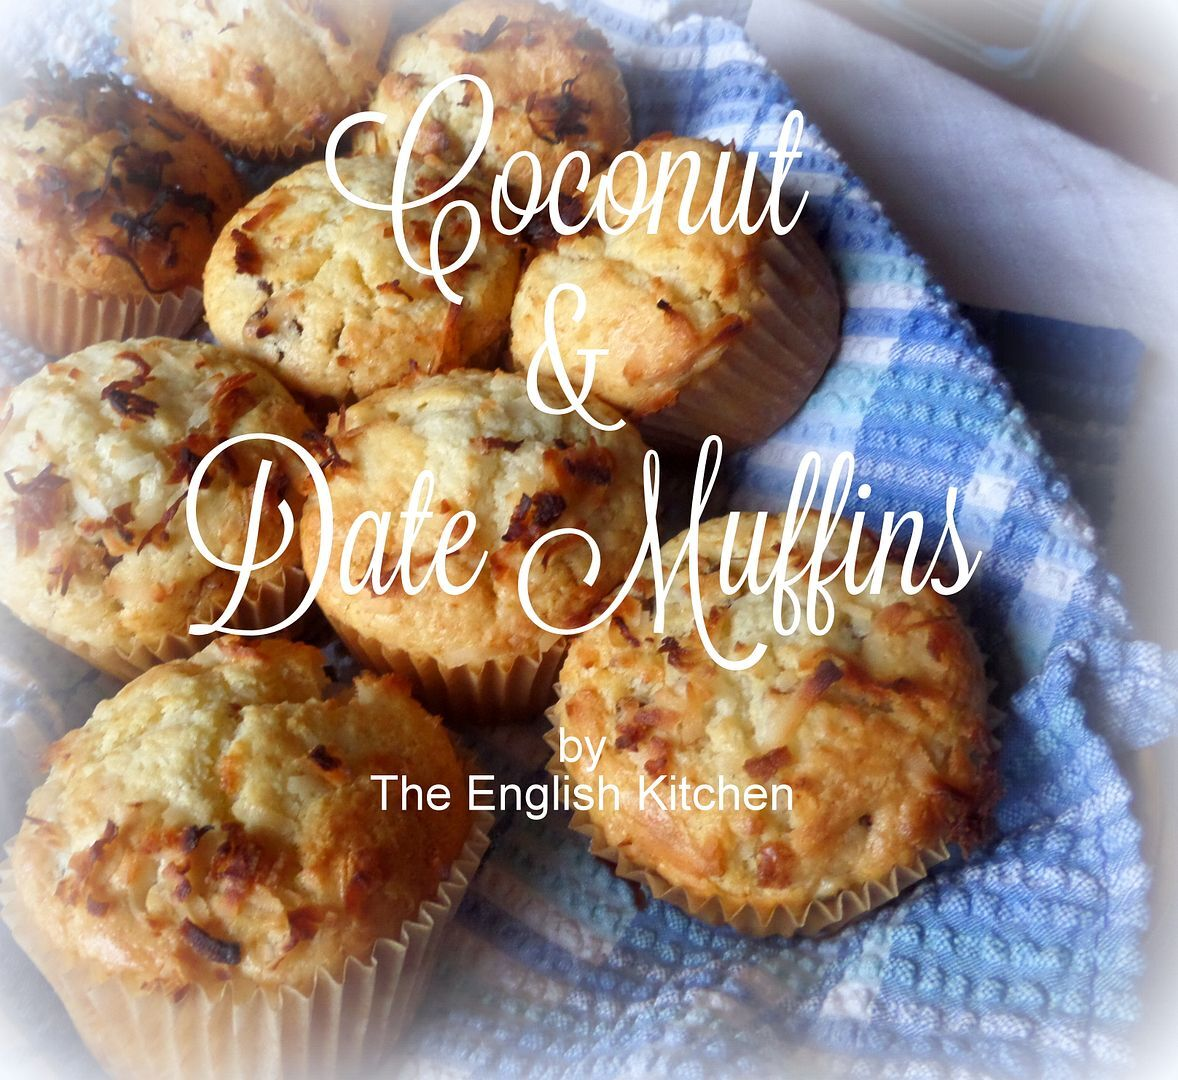 Muffins 101 and Coconut & Date Muffins